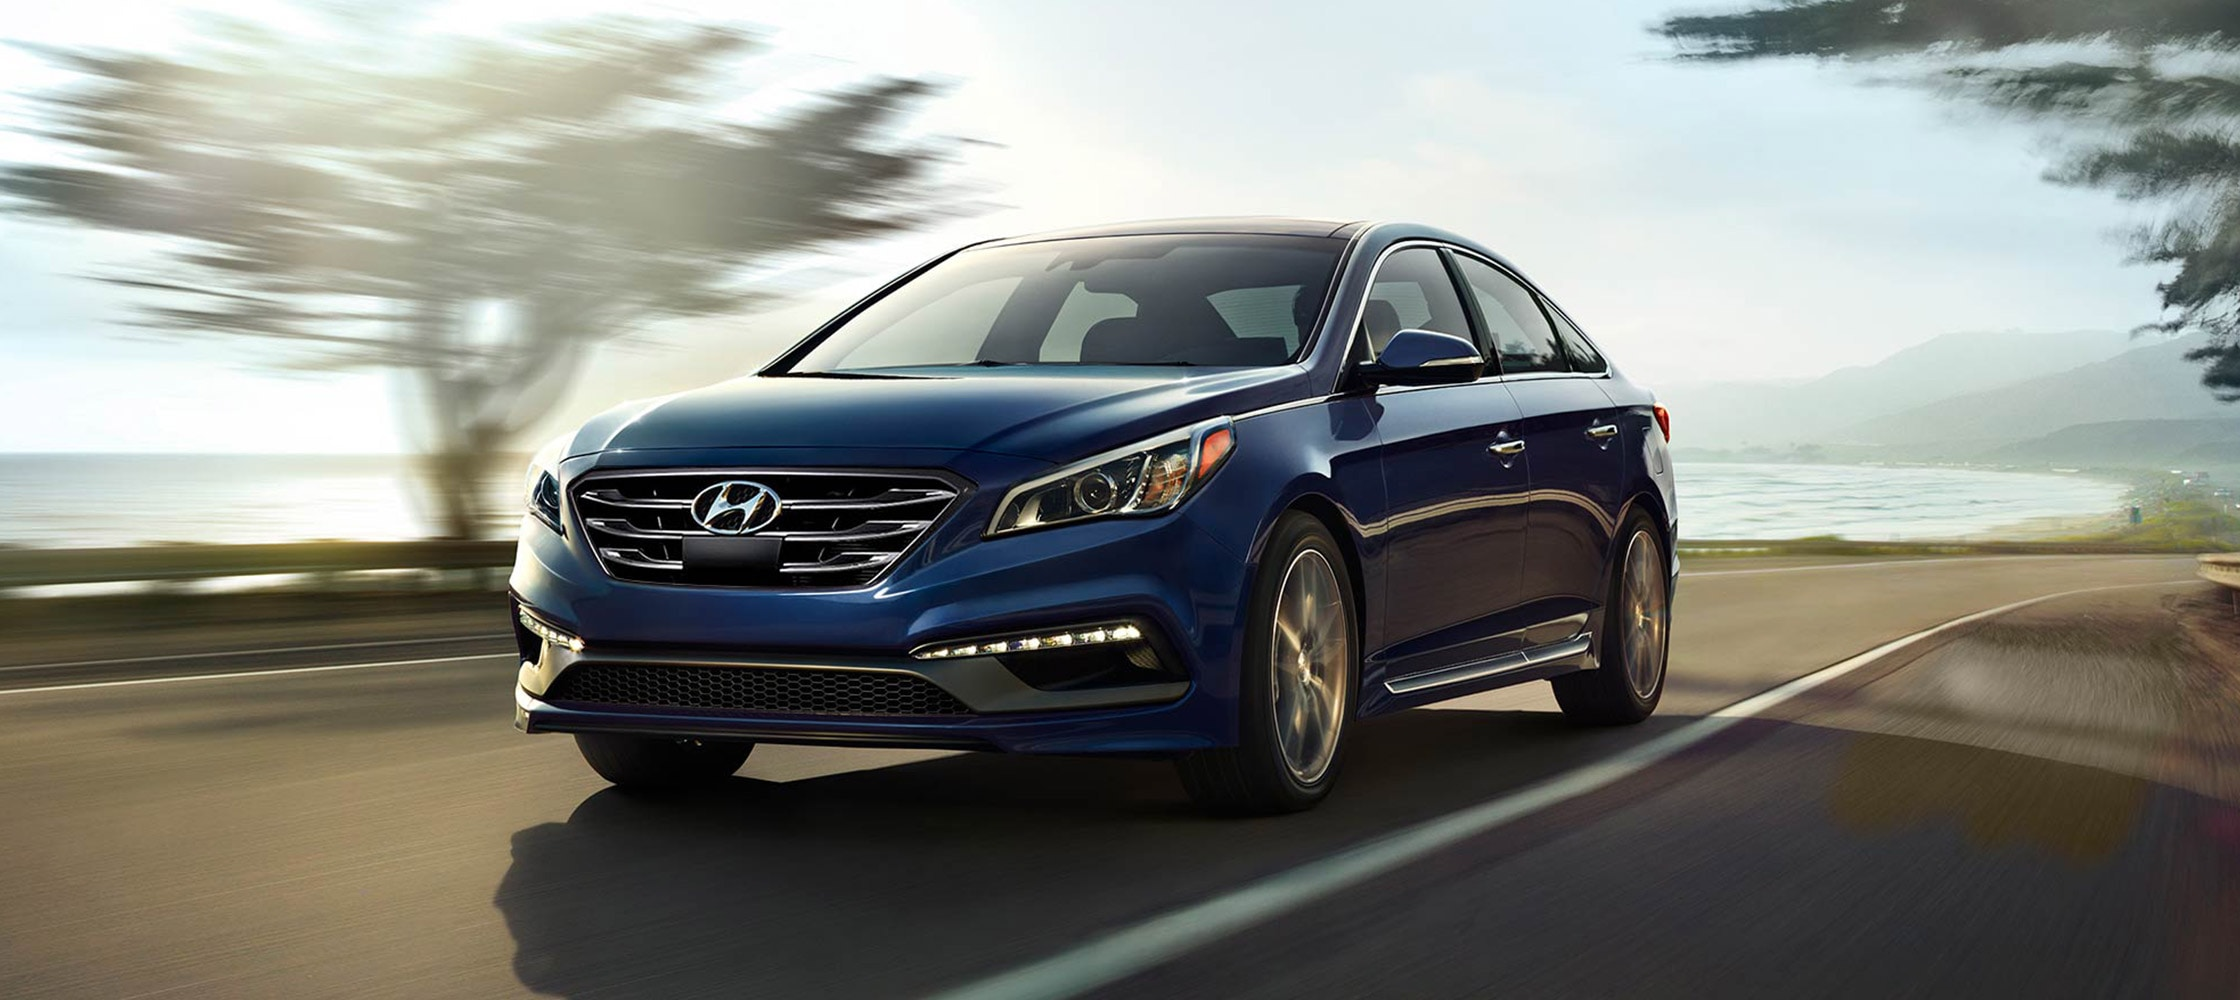 Exterior image of blue Hyundai Sonata 2017 sport model with aggressive design elements